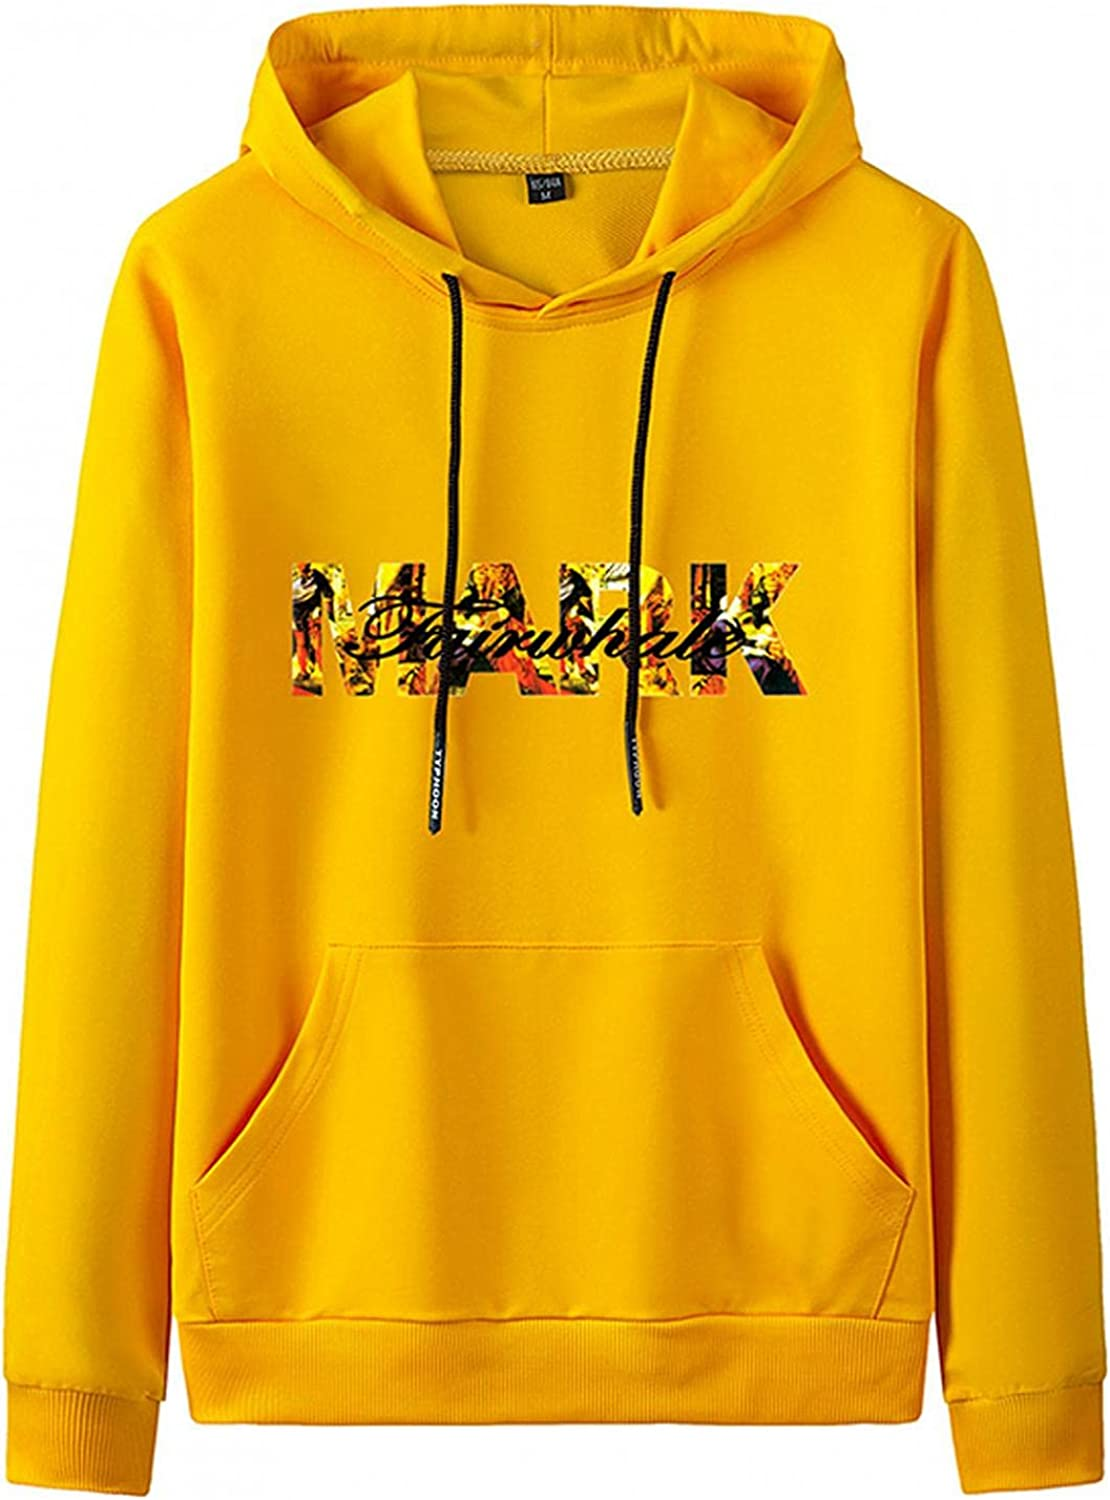 Huangse Men's Mark Hoodie Casual Letter Print Loose Fit Pullover Shirt for Men and Women Hip Hop Trend Sweatshirt